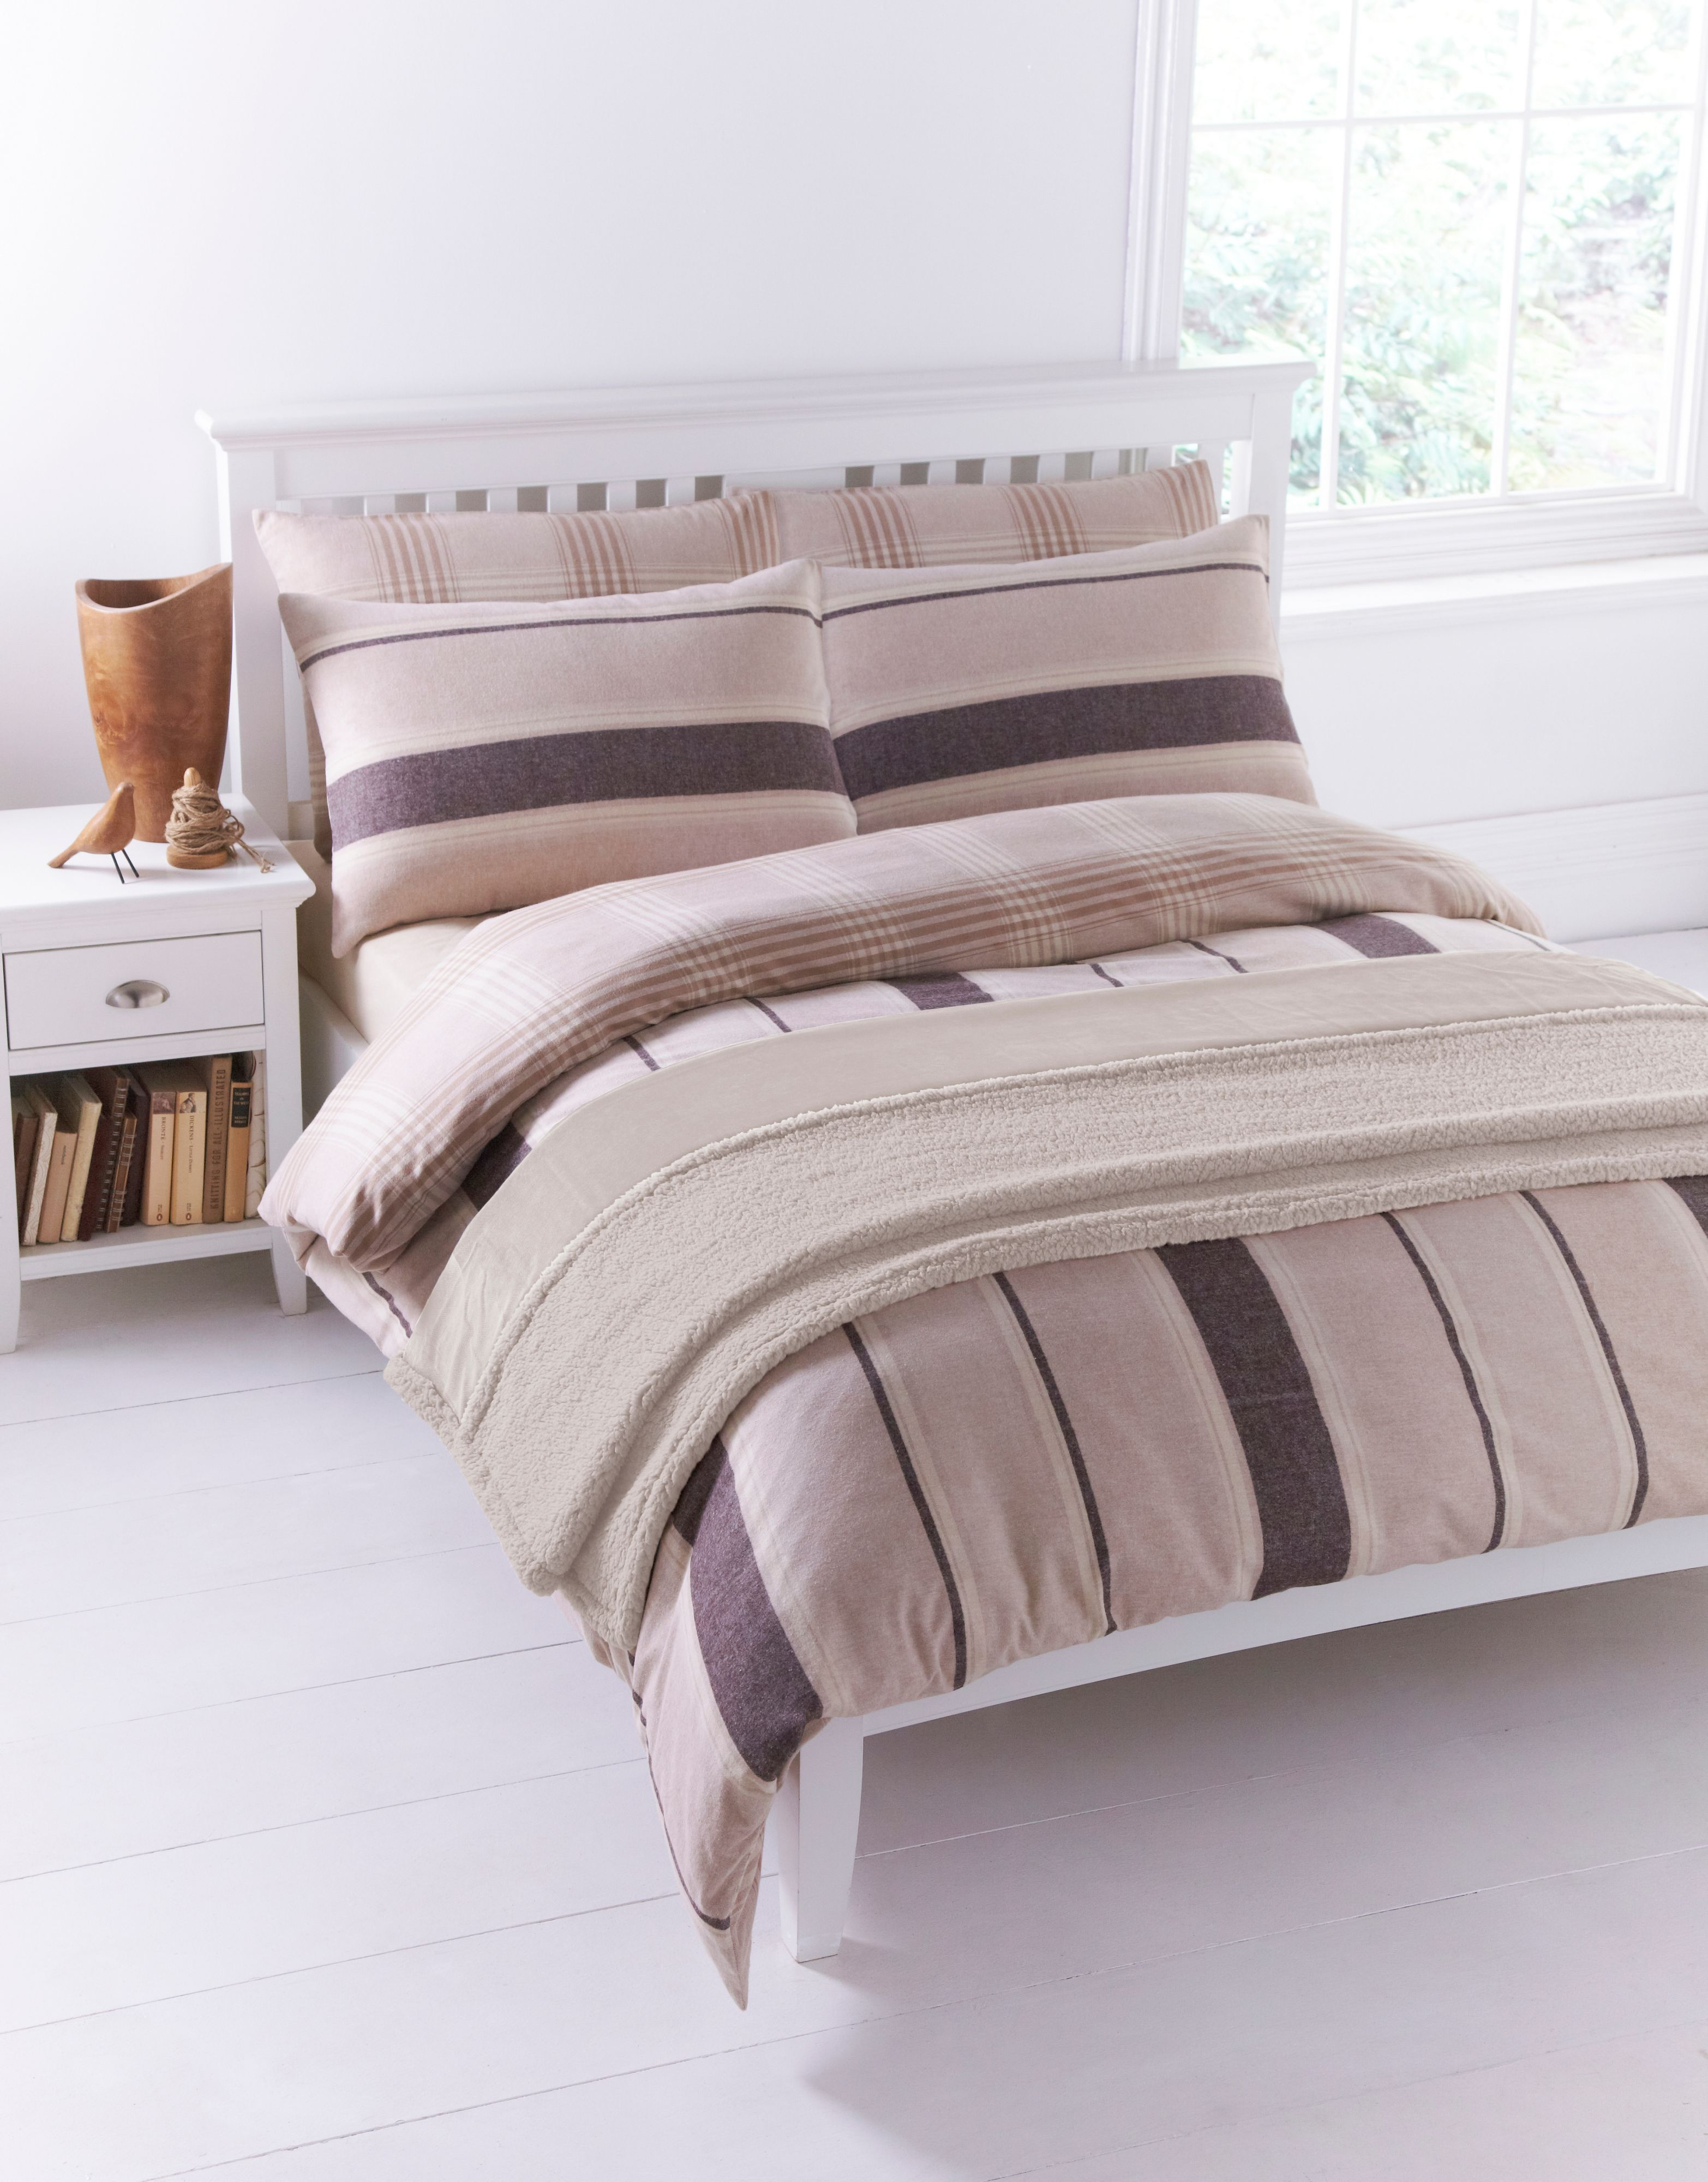 Beige flannel king duvet cover set